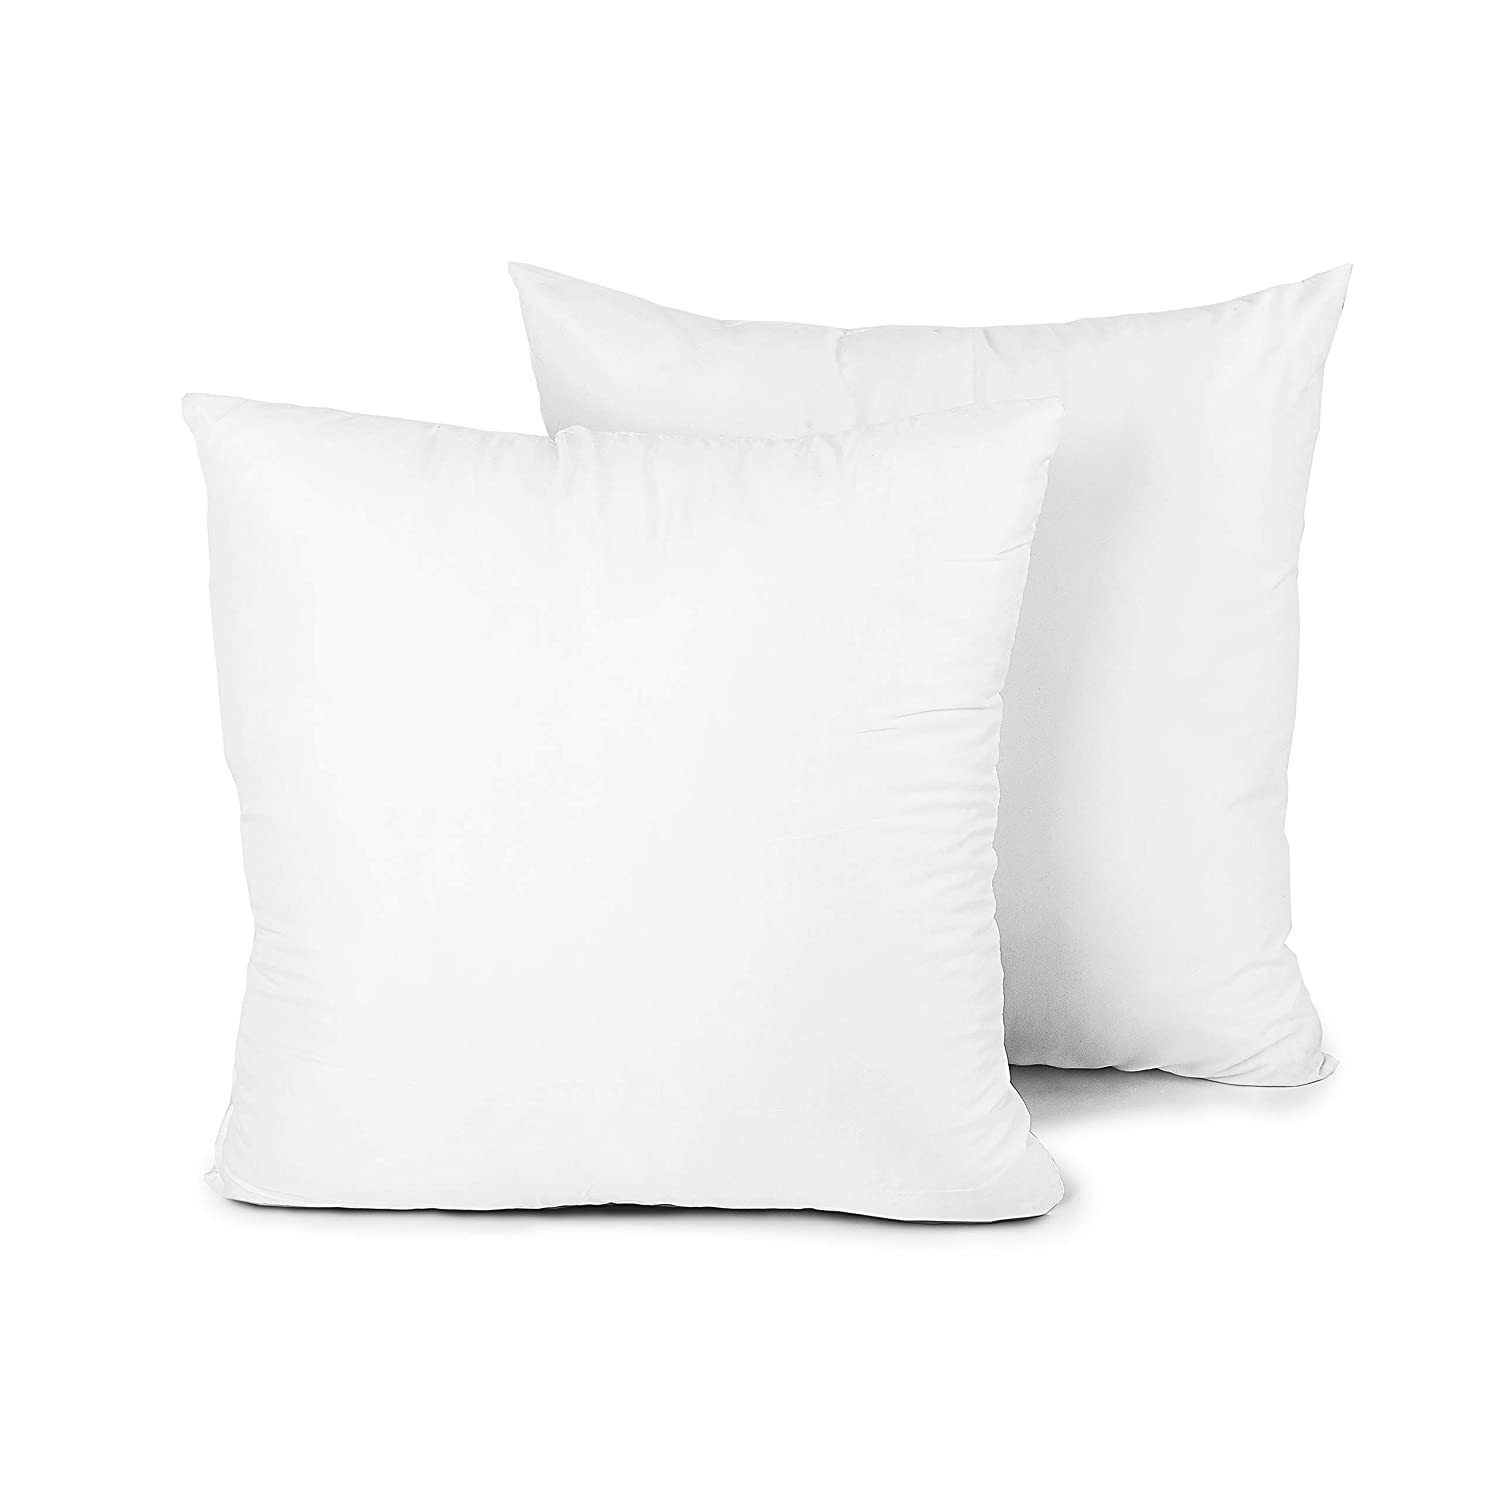 White, 12x12 Set of 2 Hypoallergenic Down Alternative Polyester Square Form Decorative Pillow Cushion,Sham Stuffer. Edow Throw Pillow Insert